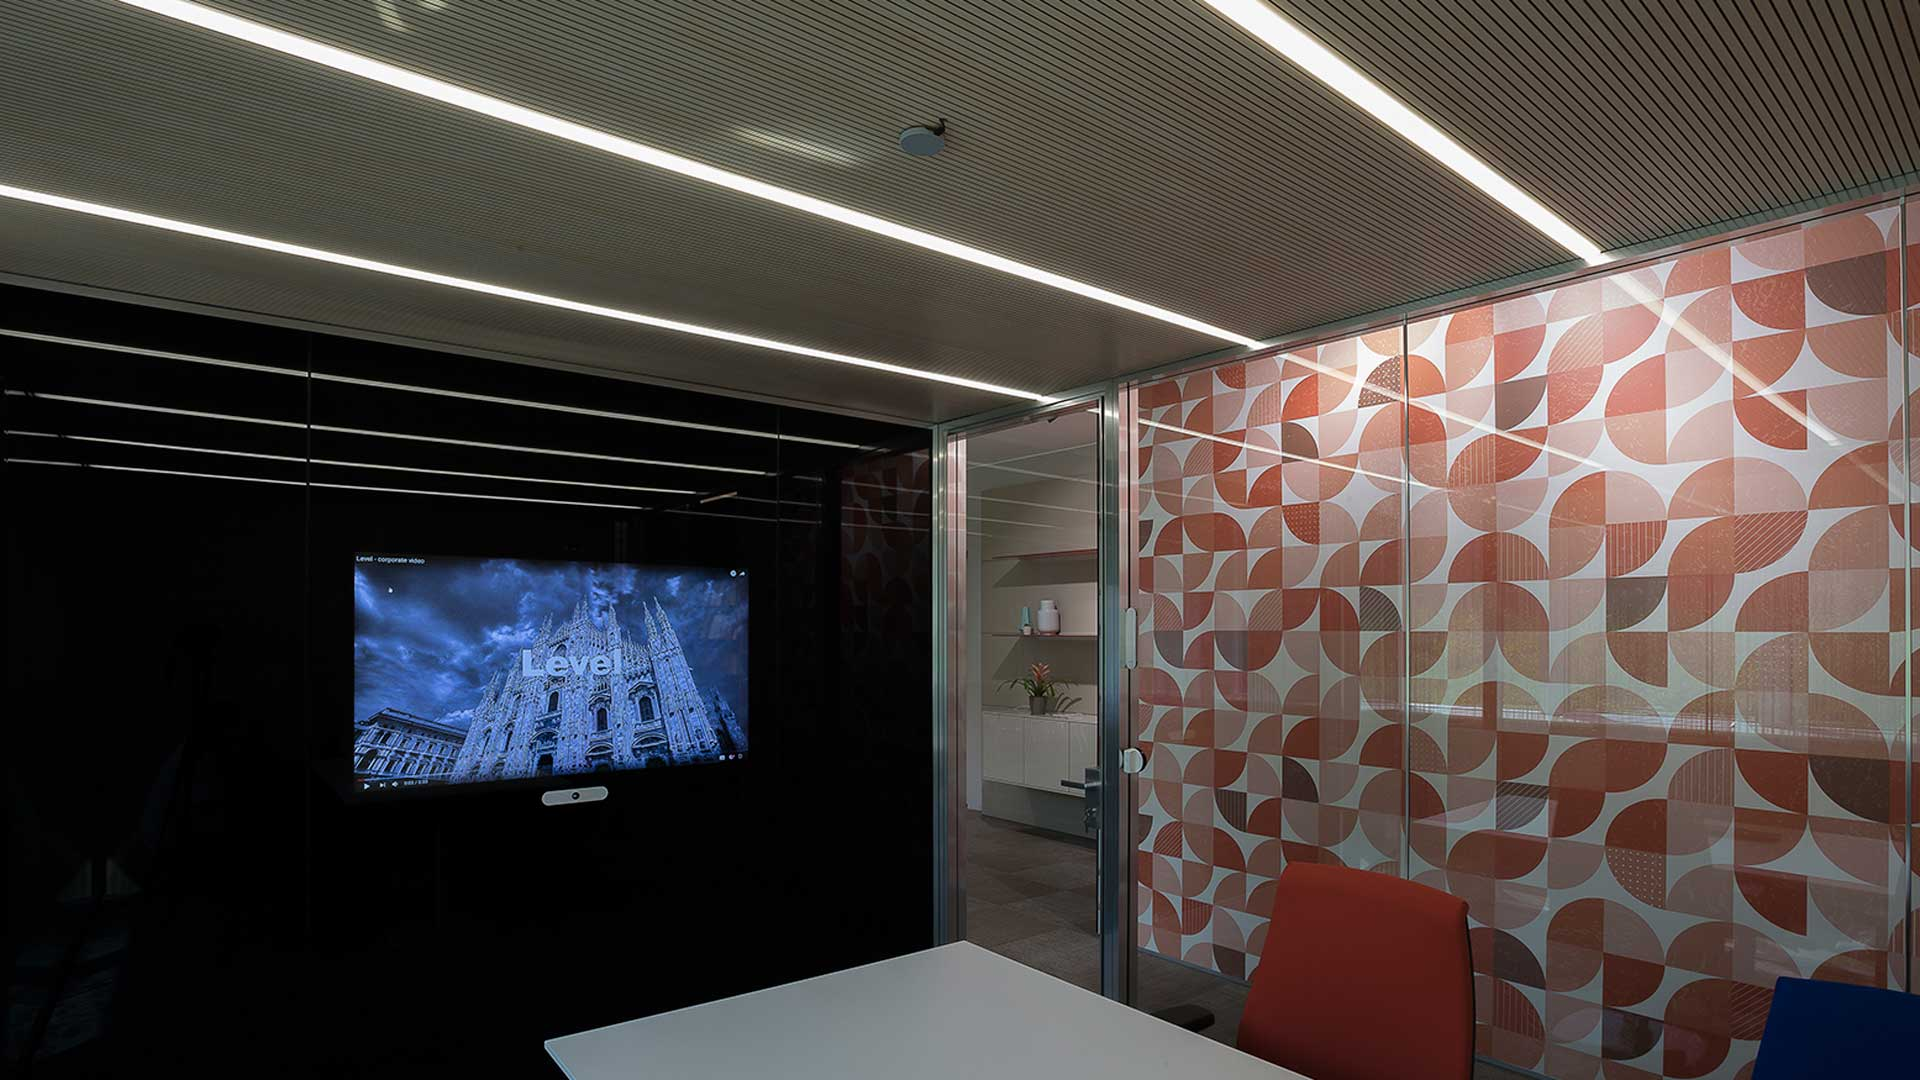 Huddle-Room-Huddle-Rooms-Acoustic-Box-Smart-Wall